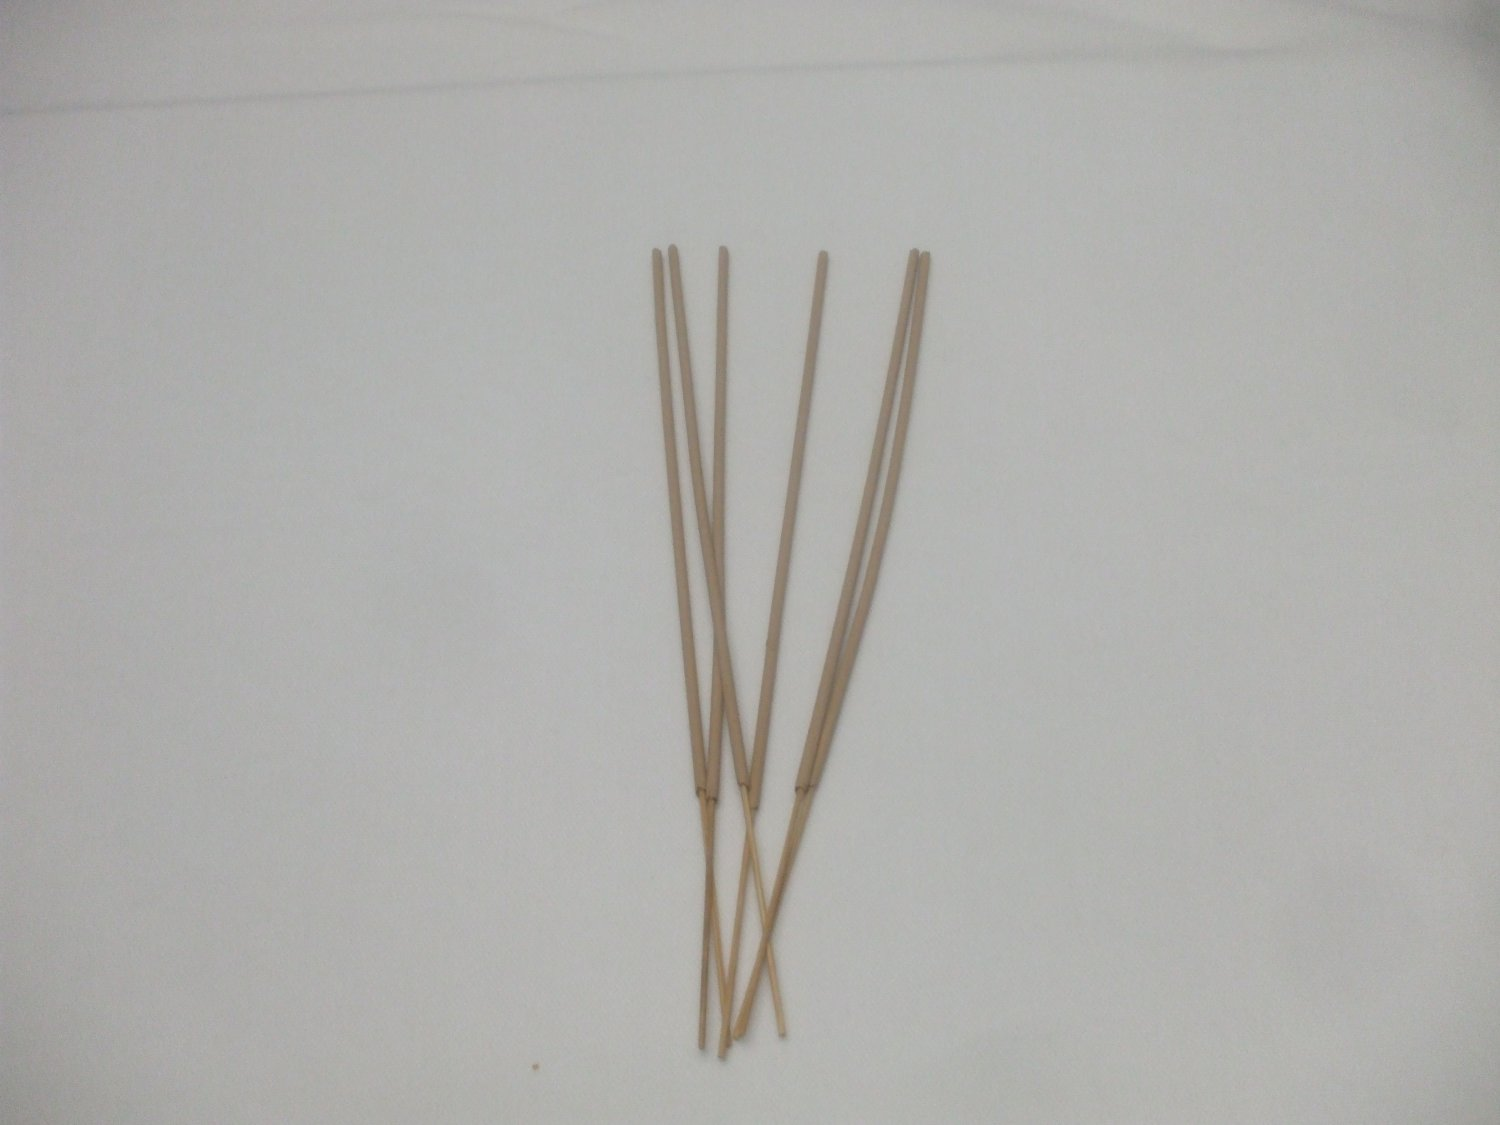 6 Jasmine Incense Sticks for love and money, induce dreams, astral projection